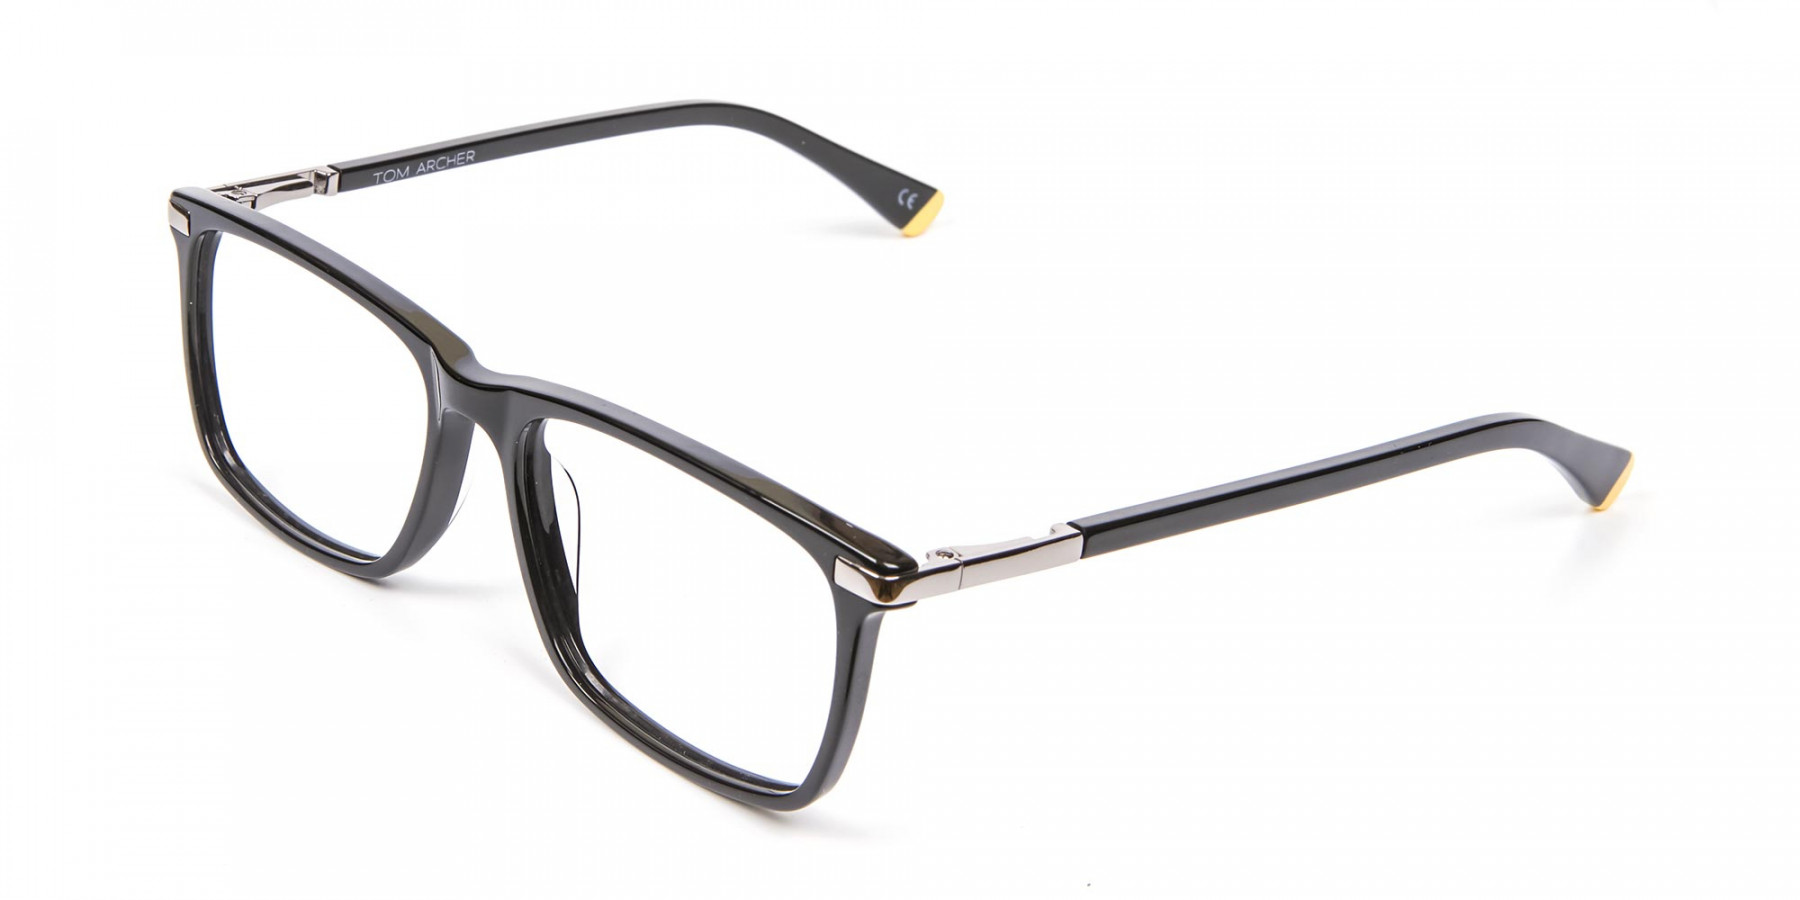 Black Rectangular Glasses with Yellow Accent - 1